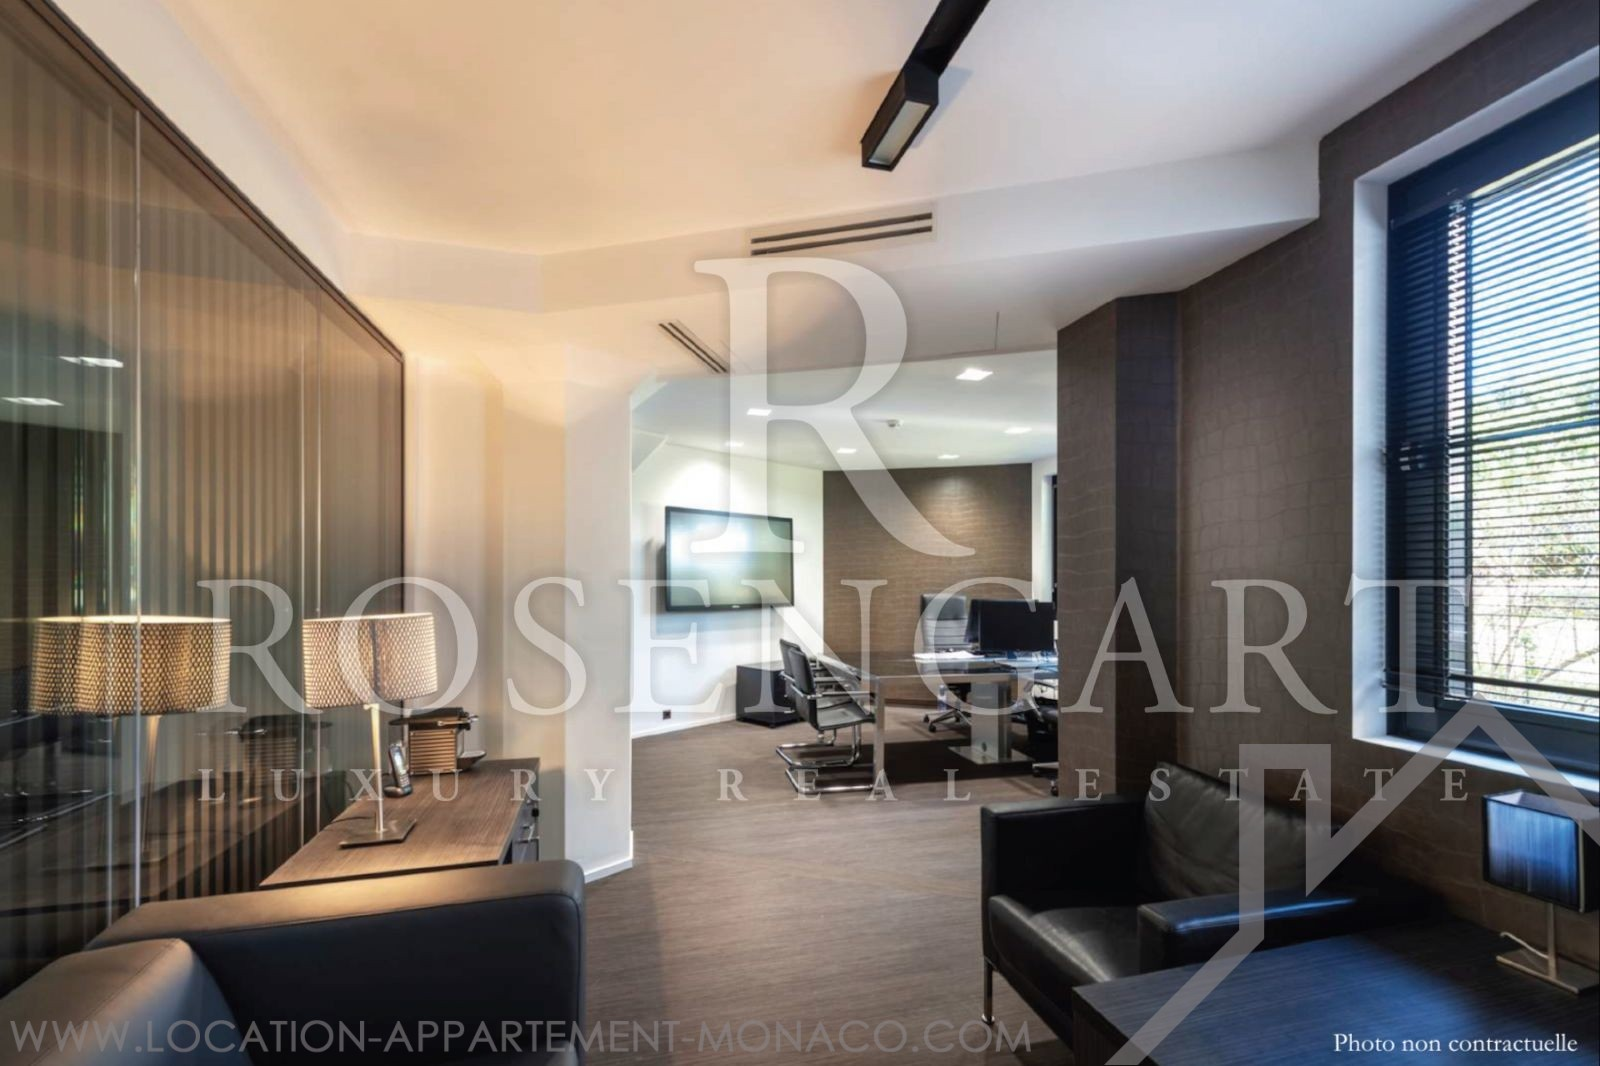 Luxurious Office in the Heart of the Golden Square - Apartments for rent in Monaco